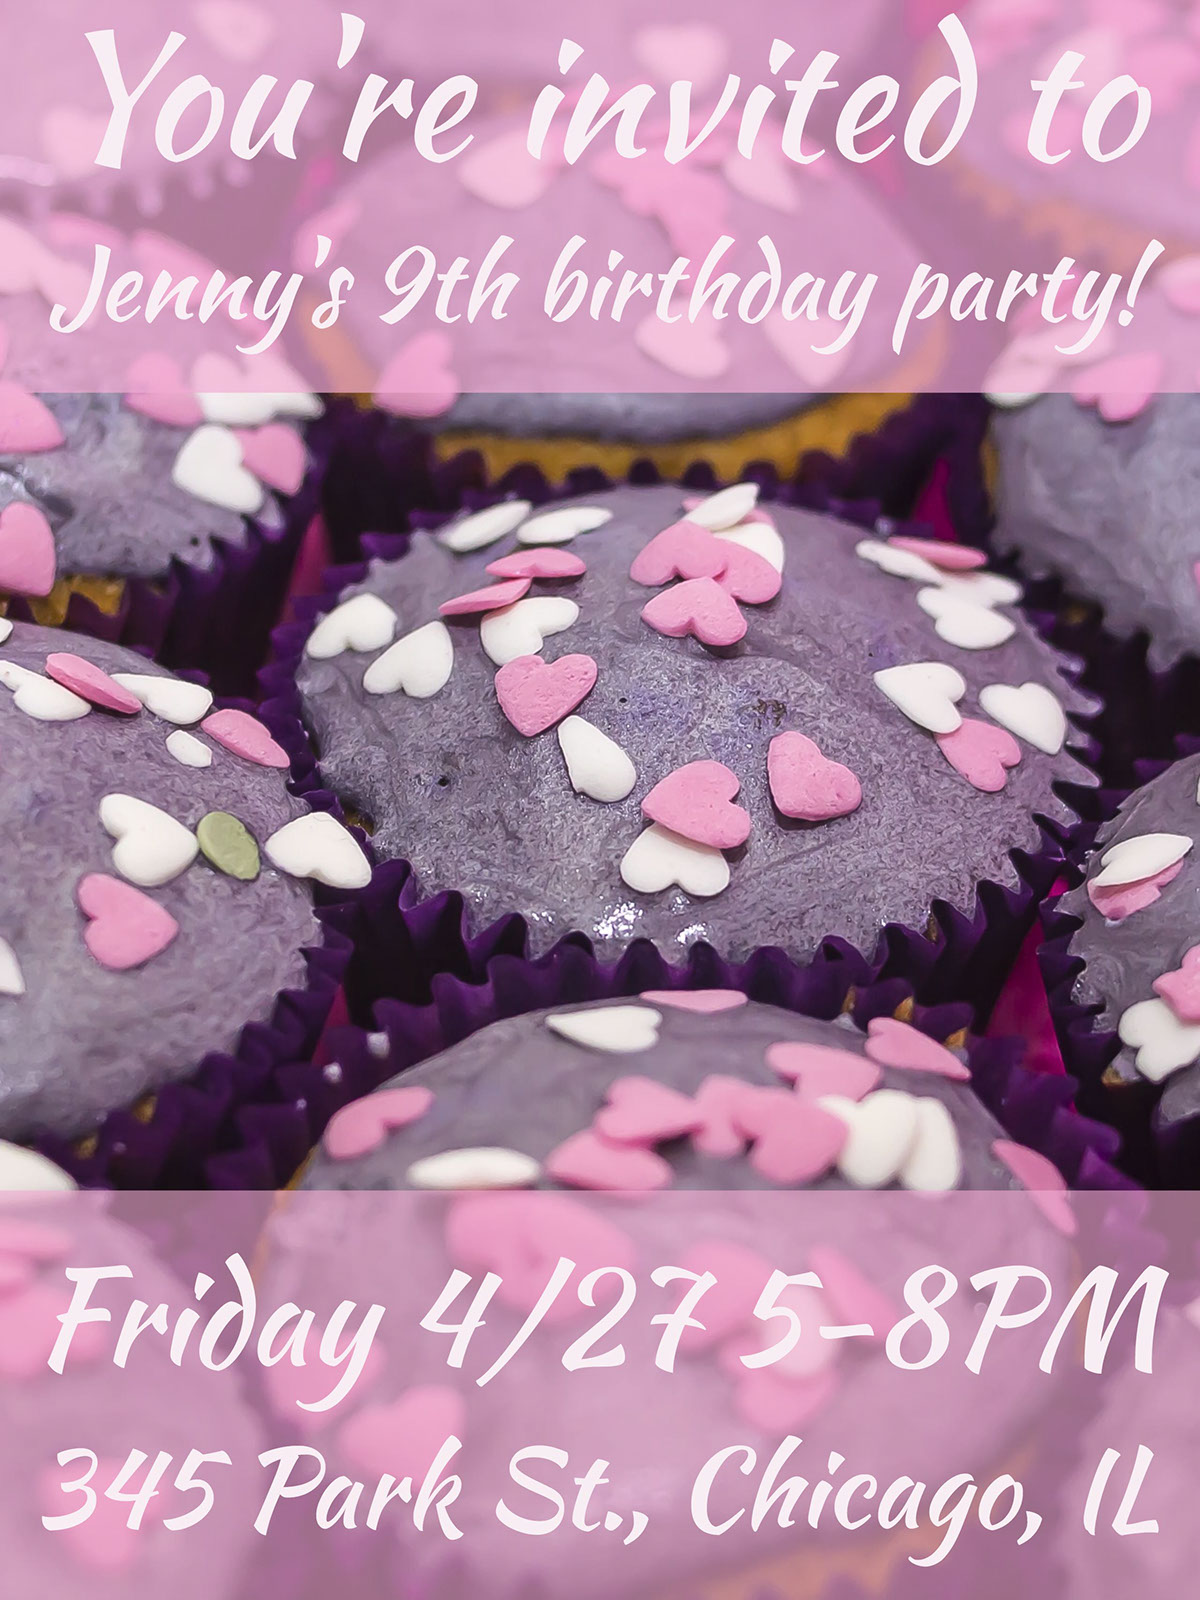 You're invited to Jenny's 9th birthday party!